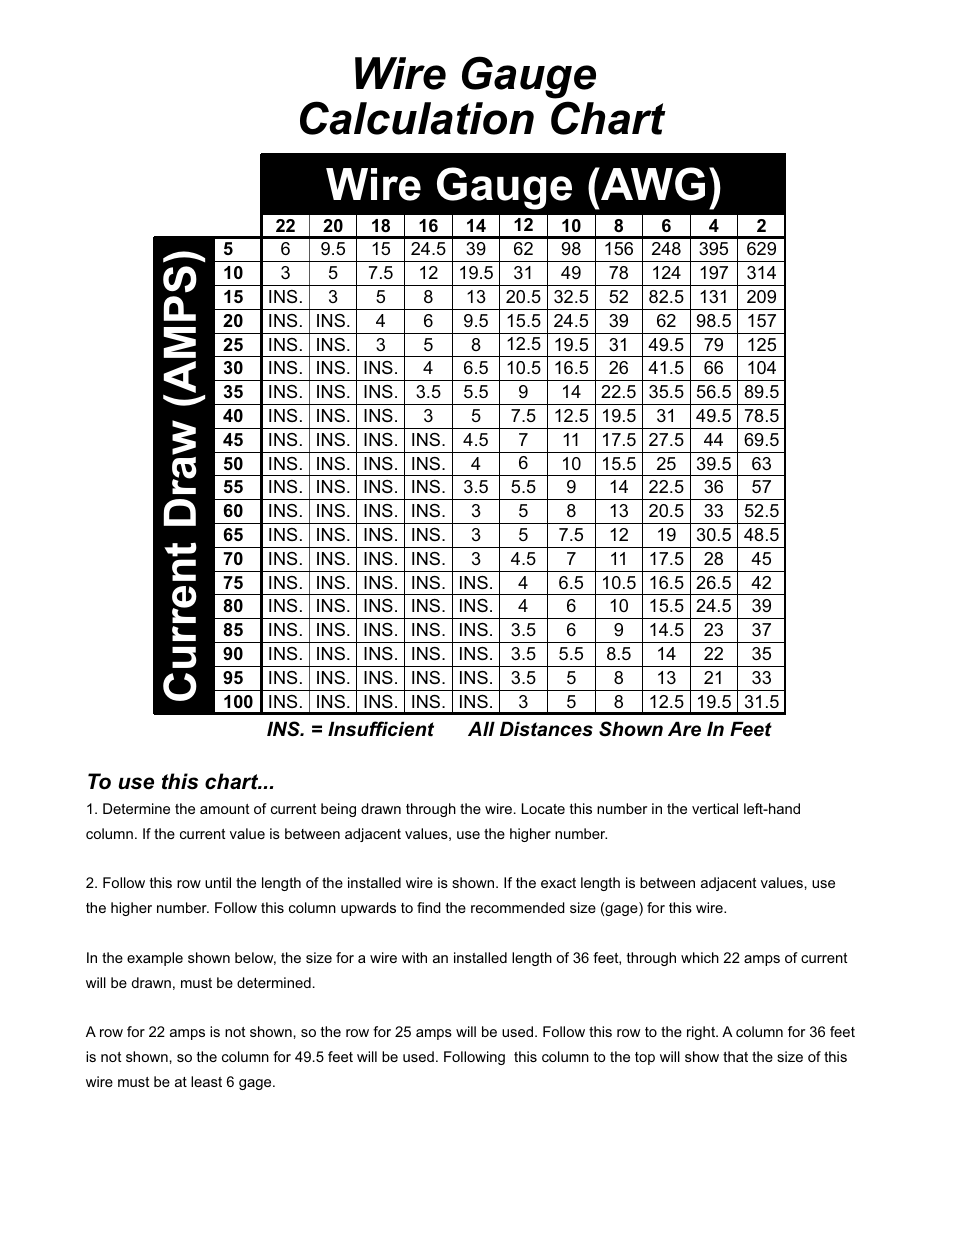 Gauge speaker wire calculator.